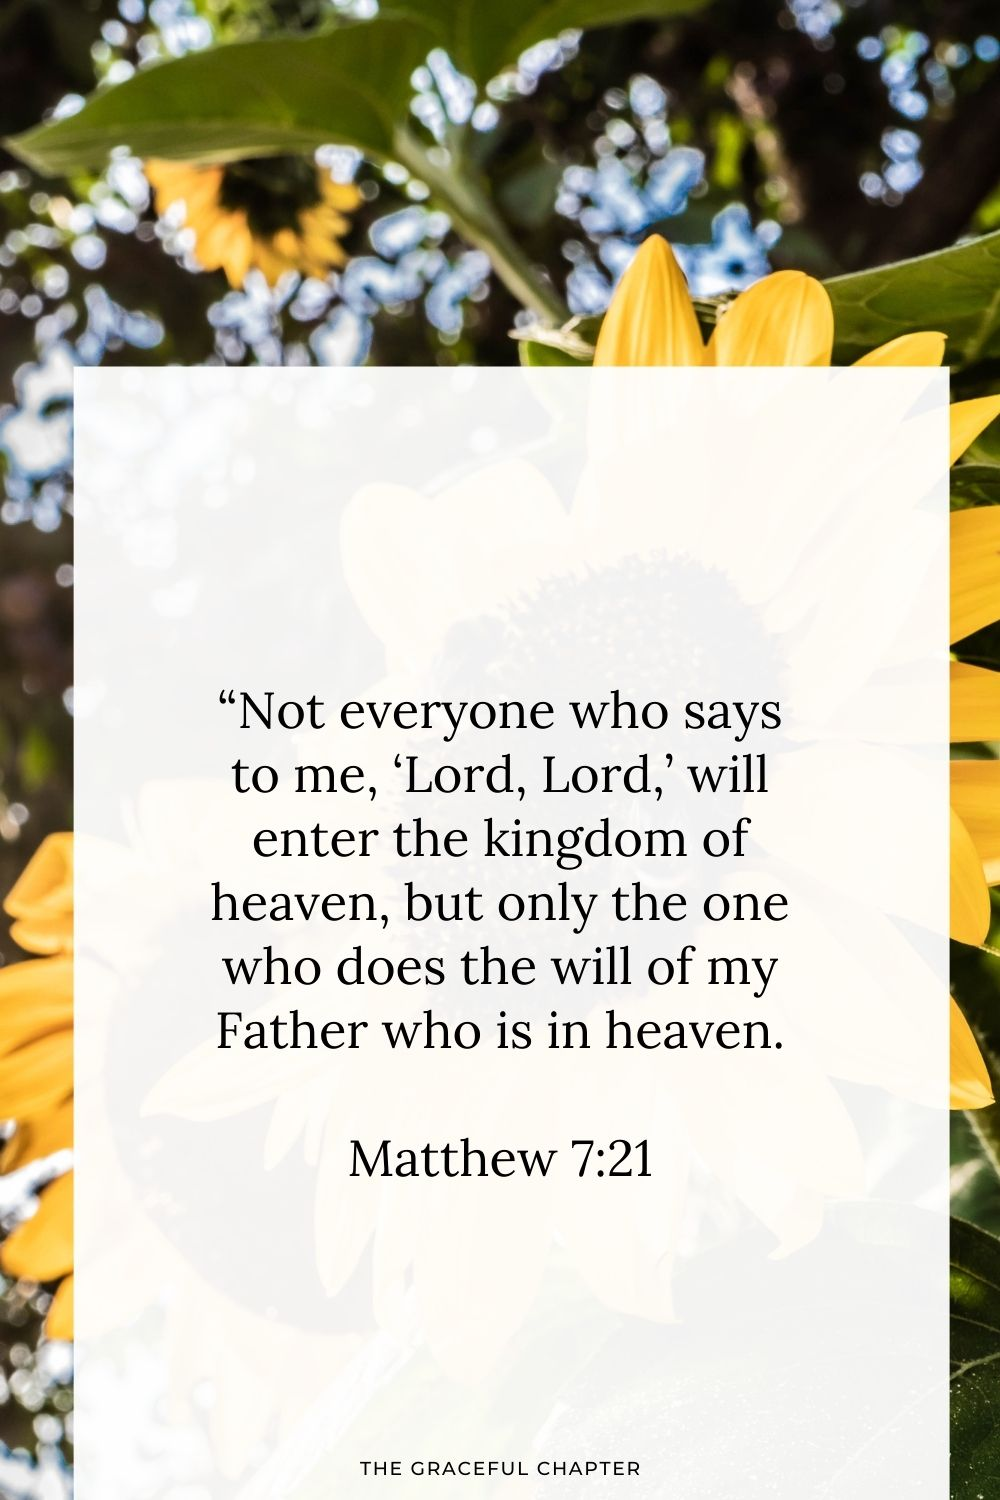 """Not everyone who says to me, 'Lord, Lord,' will enter the kingdom of heaven, but only the one who does the will of my Father who is in heaven.Matthew 7:21"